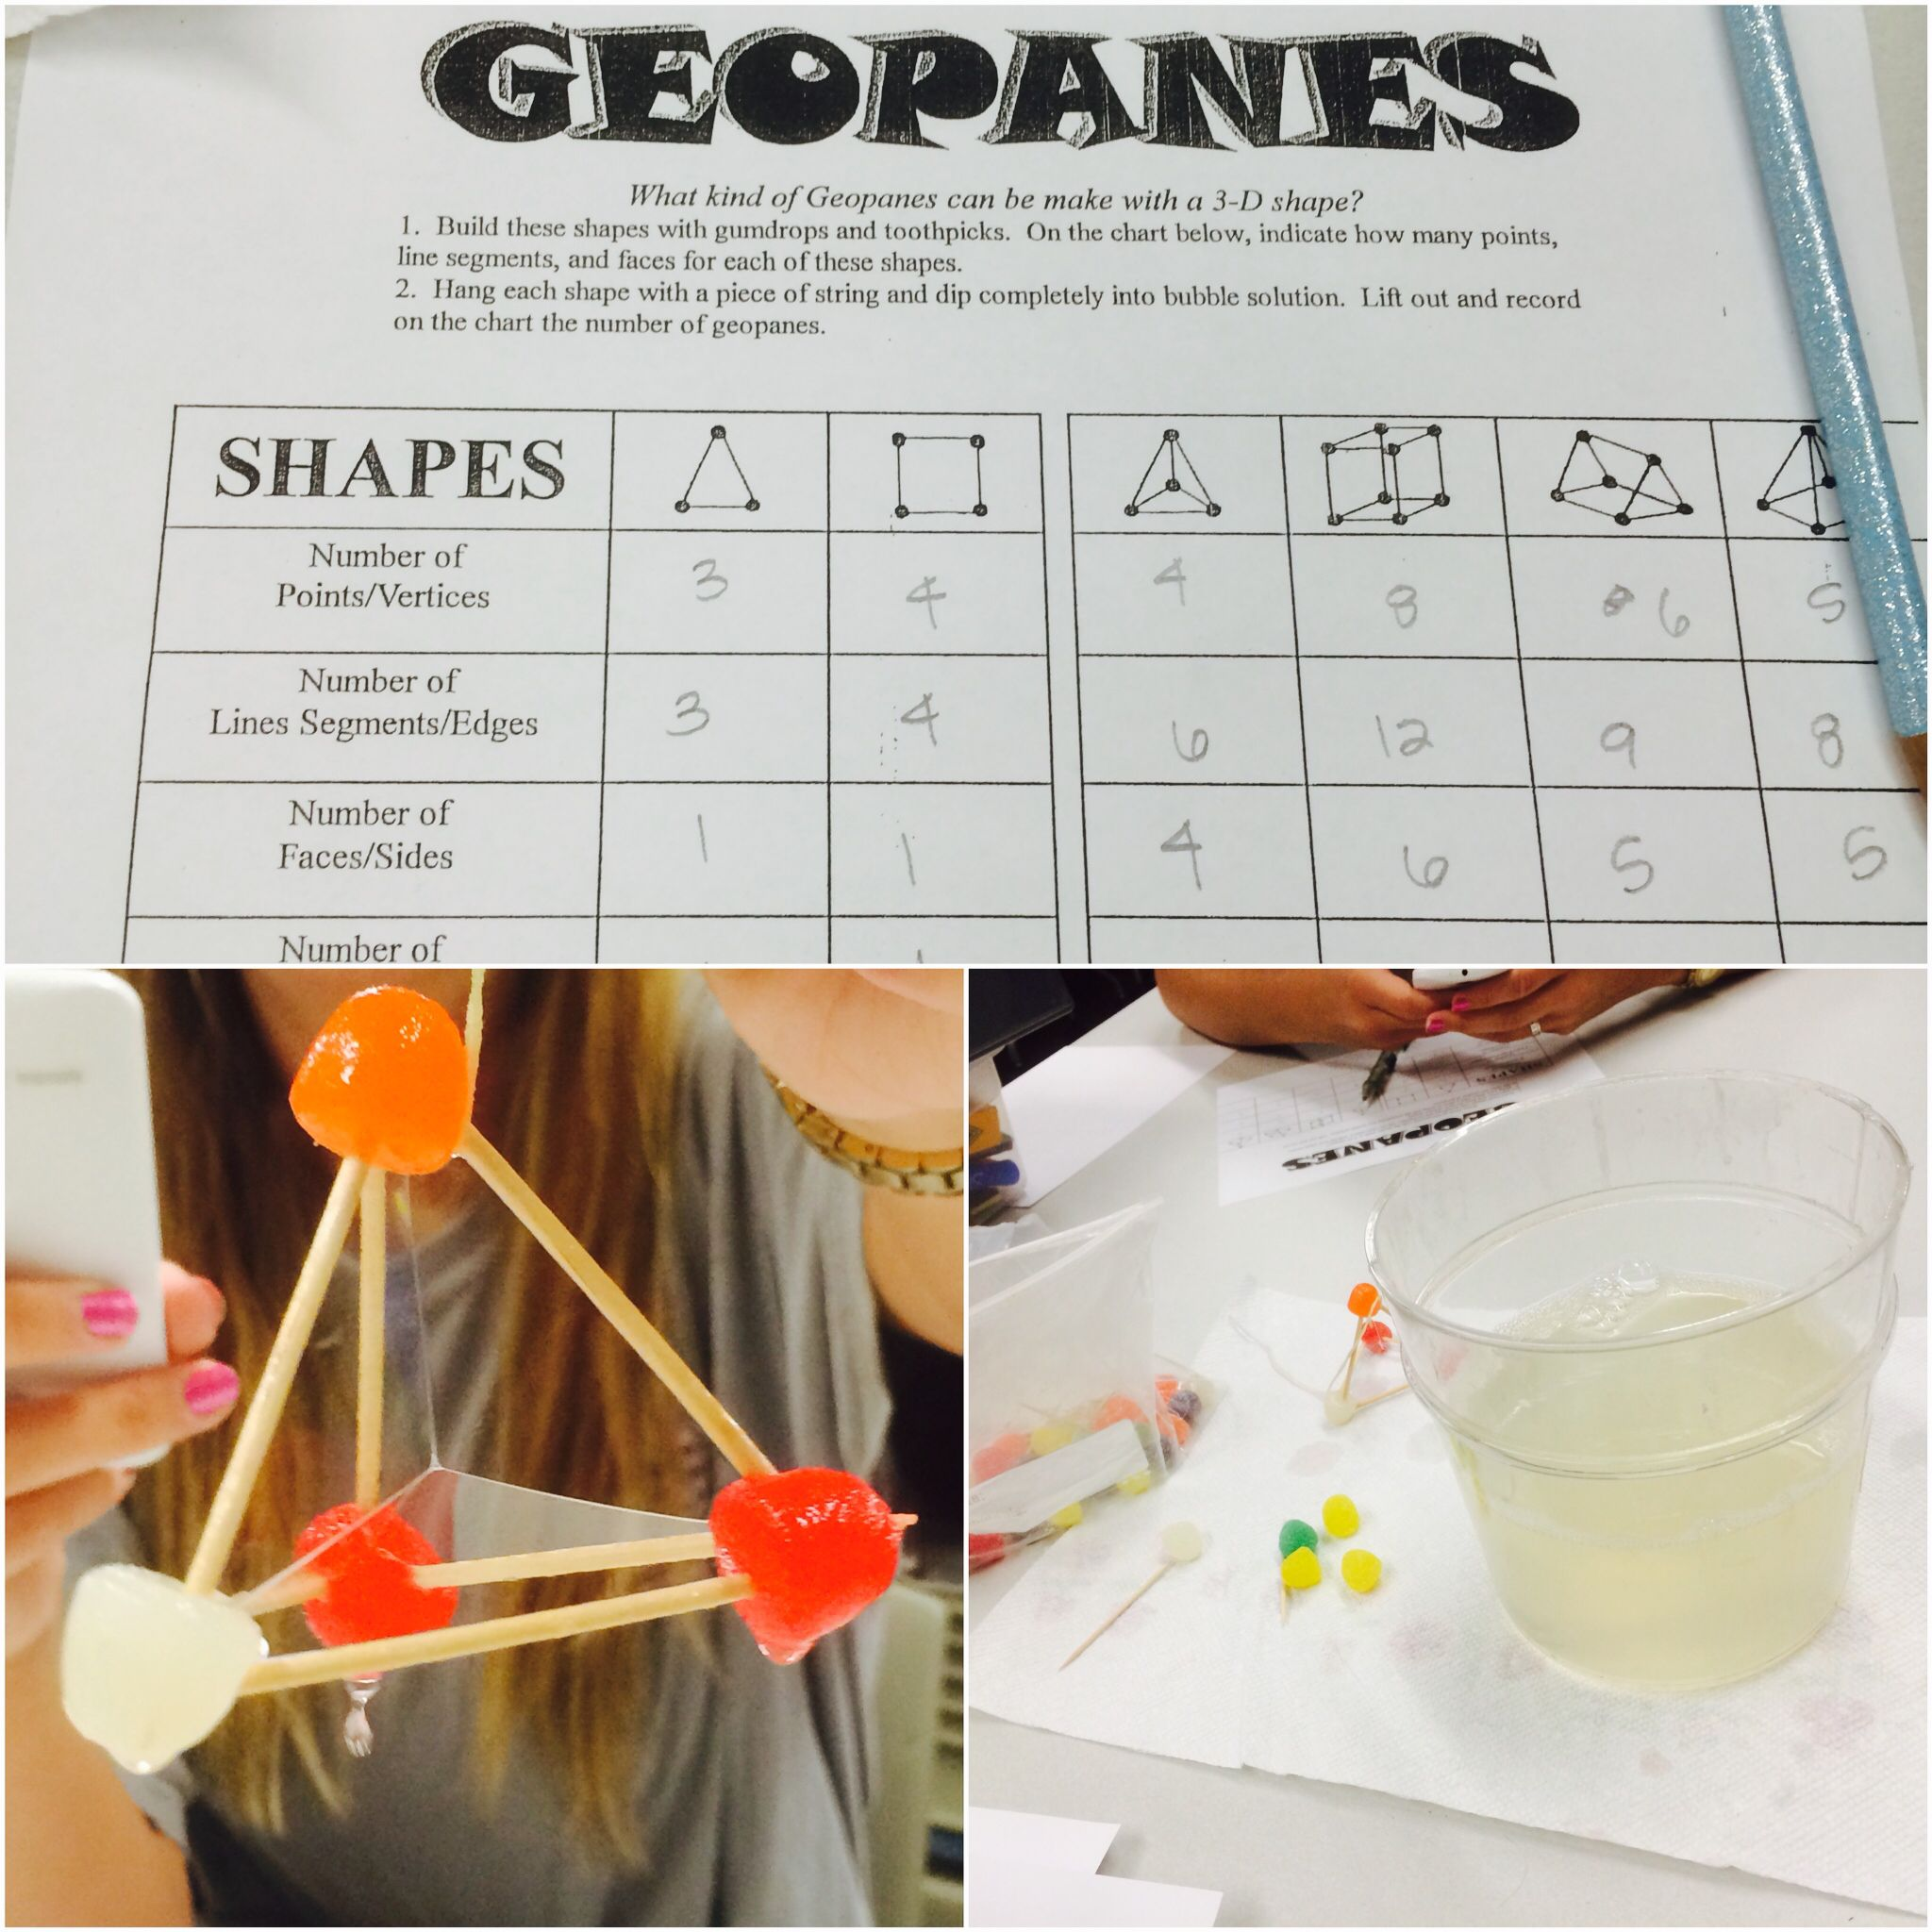 Geopanes Activity Gumdrops Toothpicks Bubble Solution